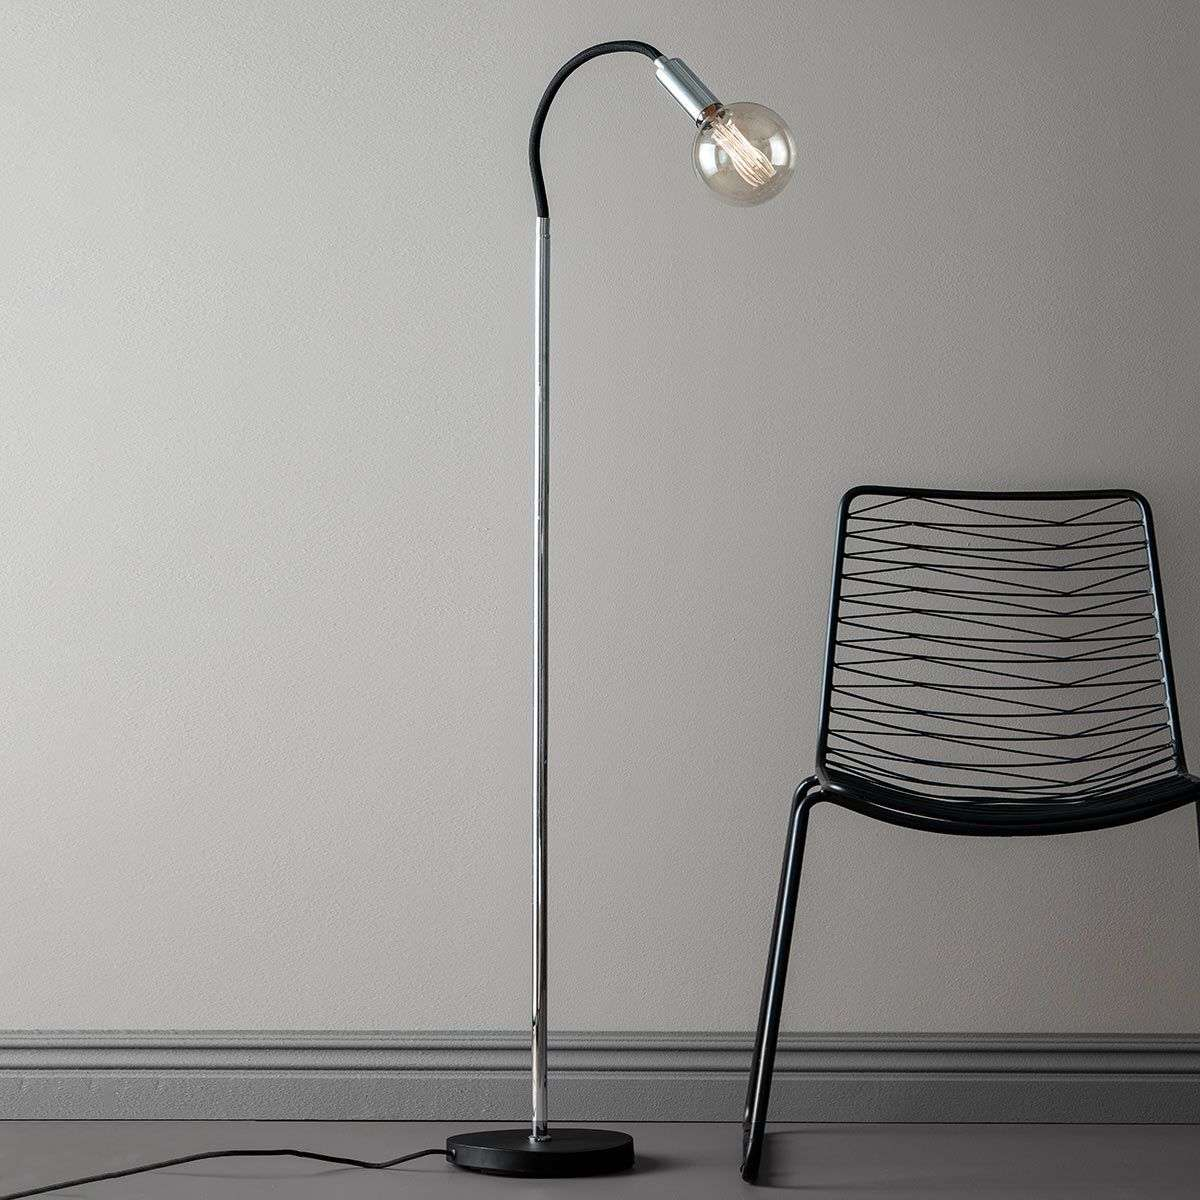 Floor lamp raw with a flexible neck lights floor lamp raw with a flexible neck 6505640 31 mozeypictures Images